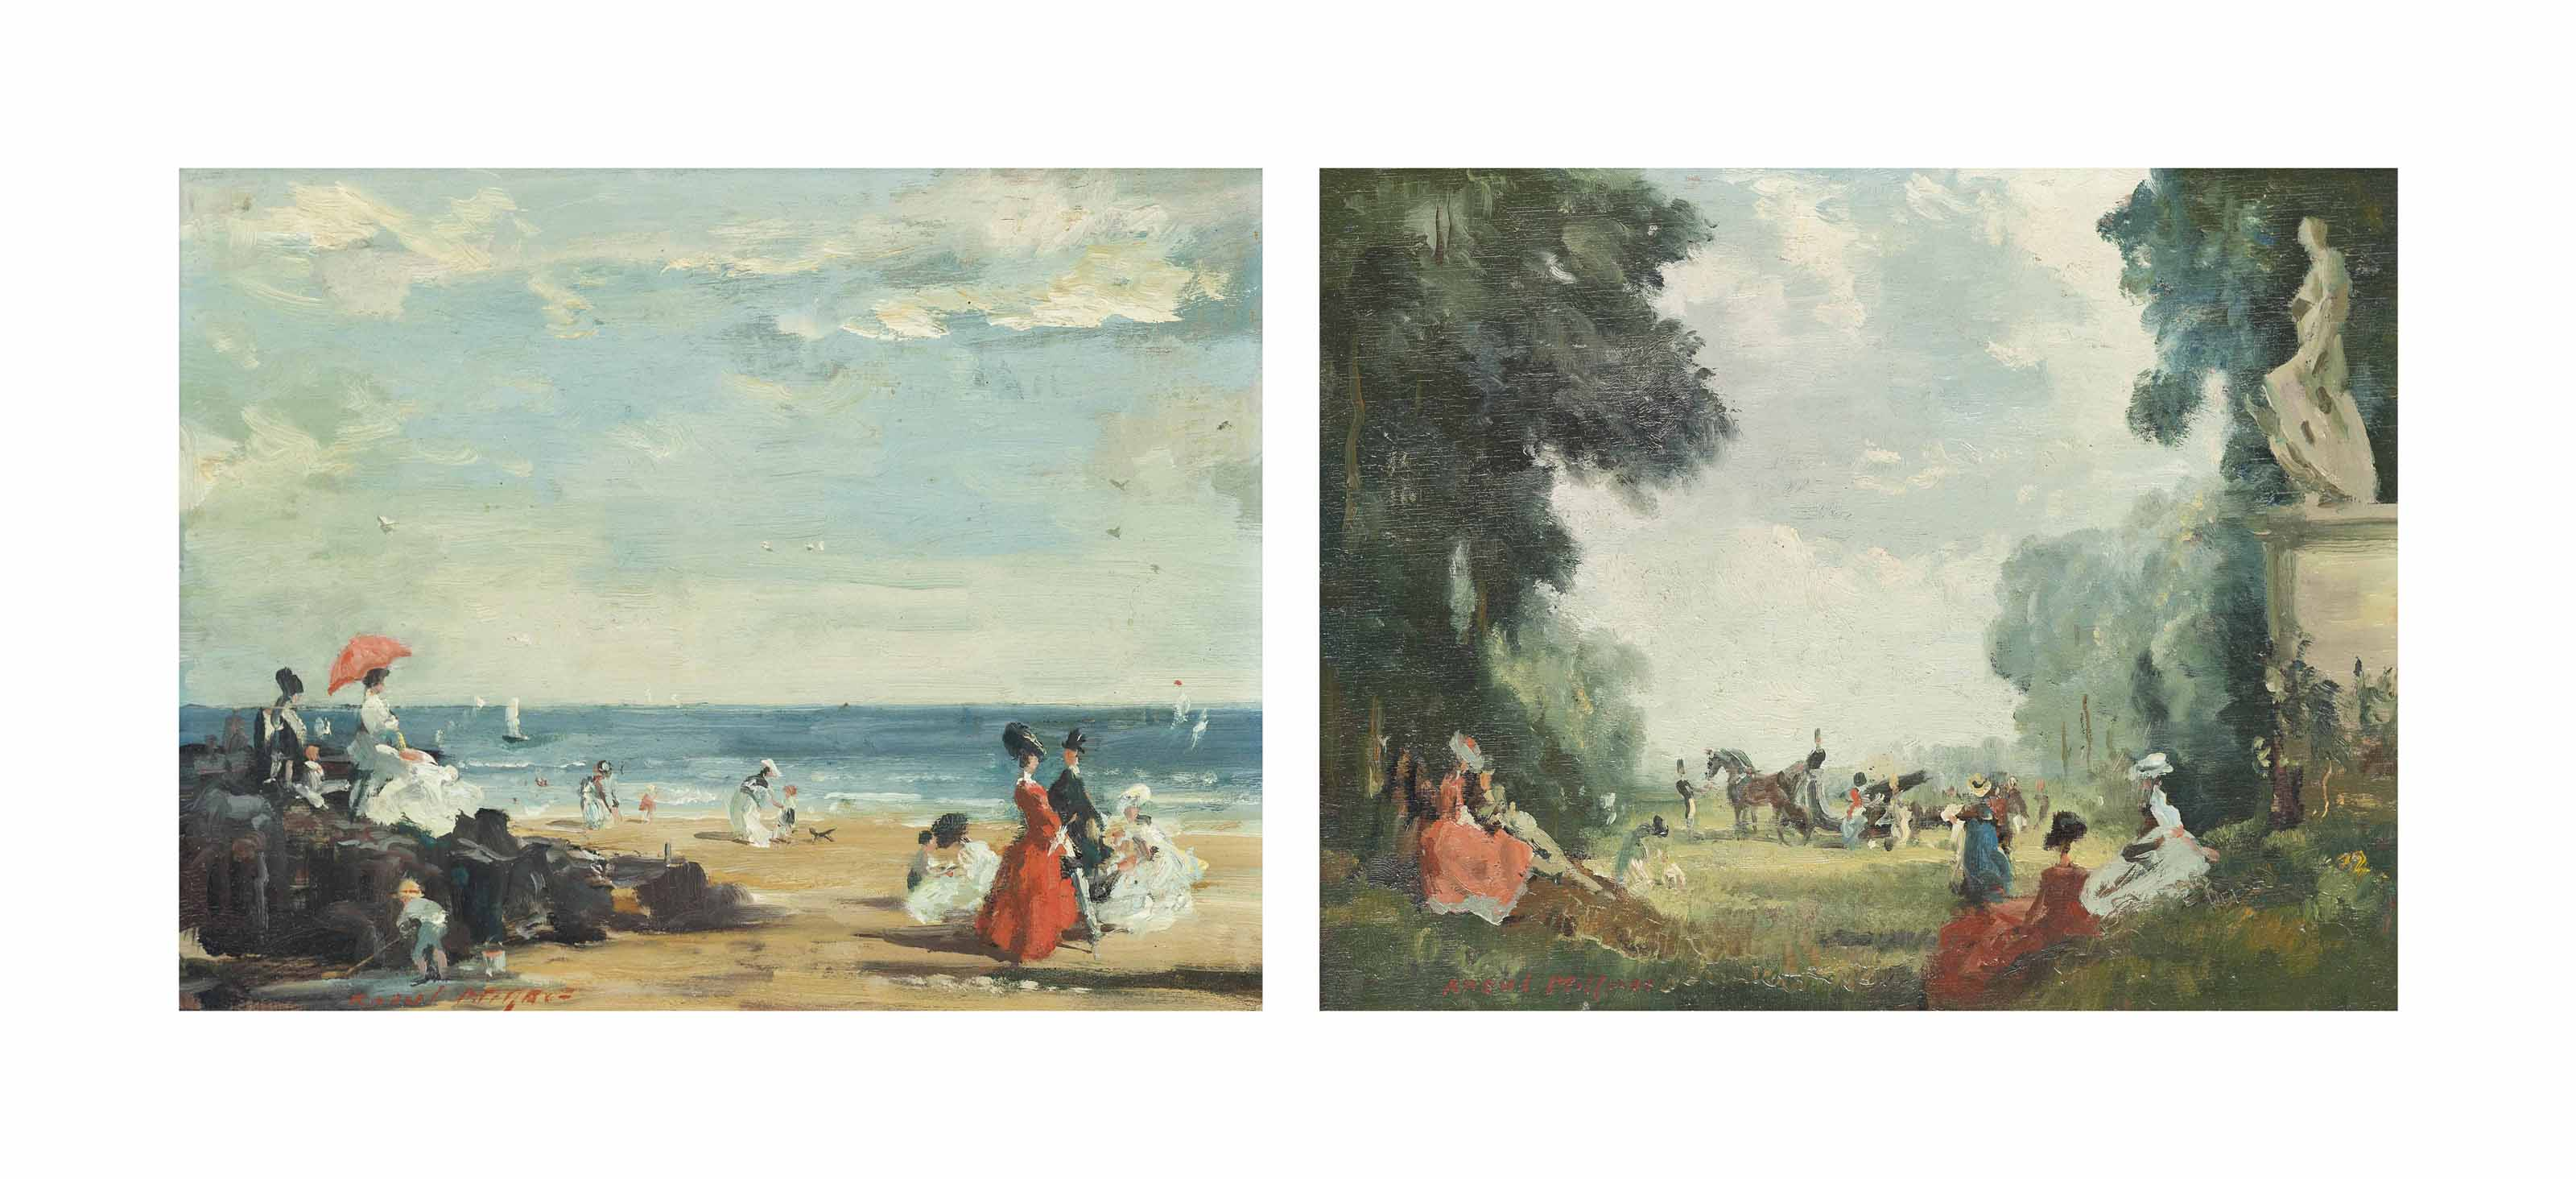 A day at the beach; and Fête champêtre